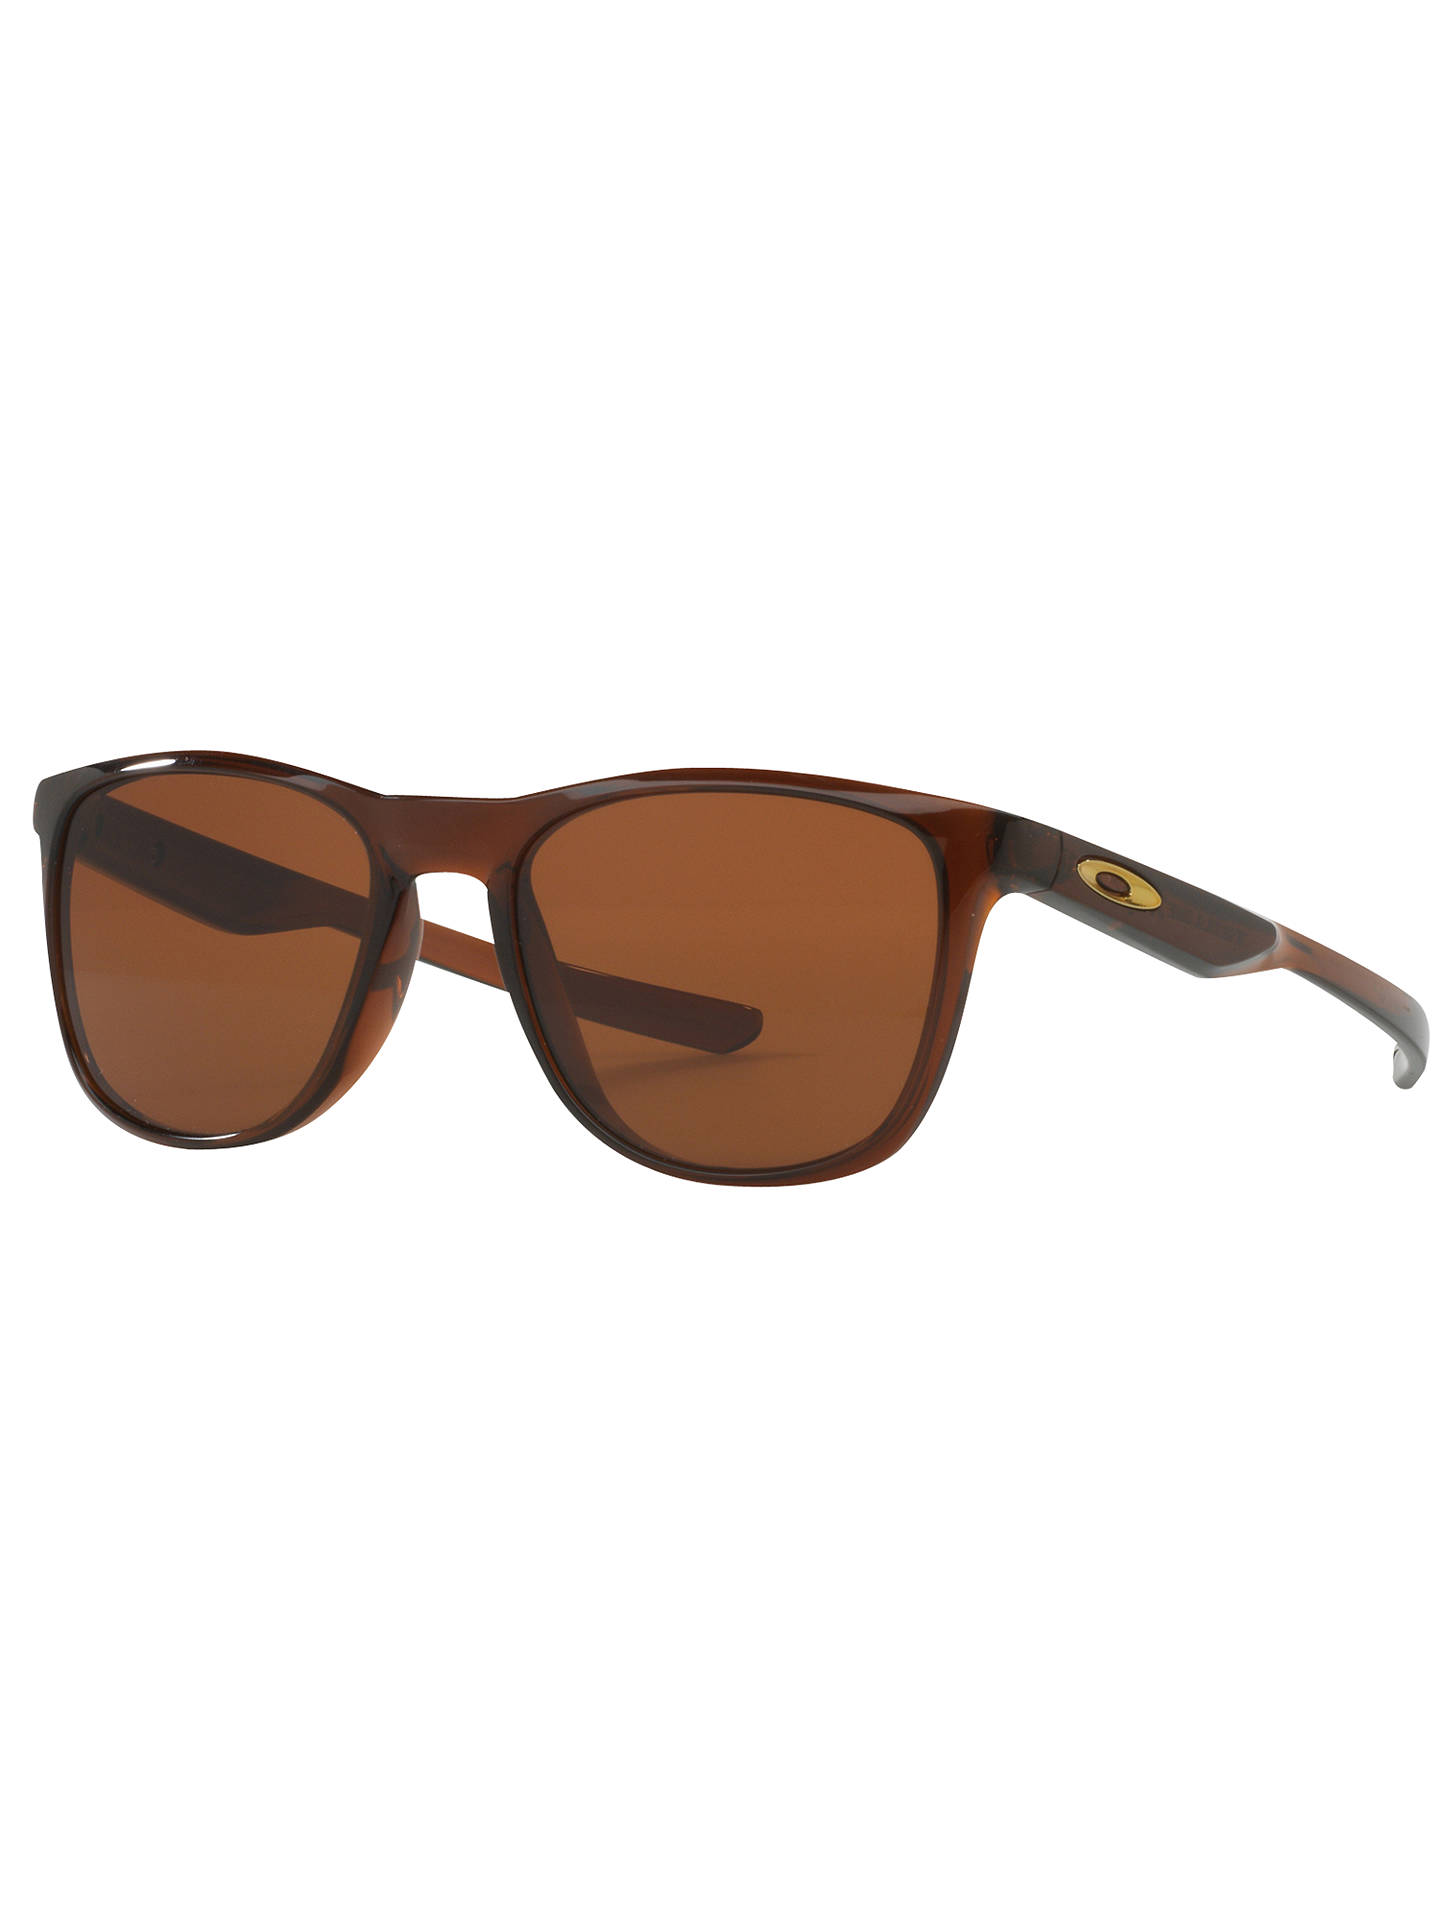 95ee8842bf Oakley OO9340 Trillbe X Square Sunglasses at John Lewis   Partners